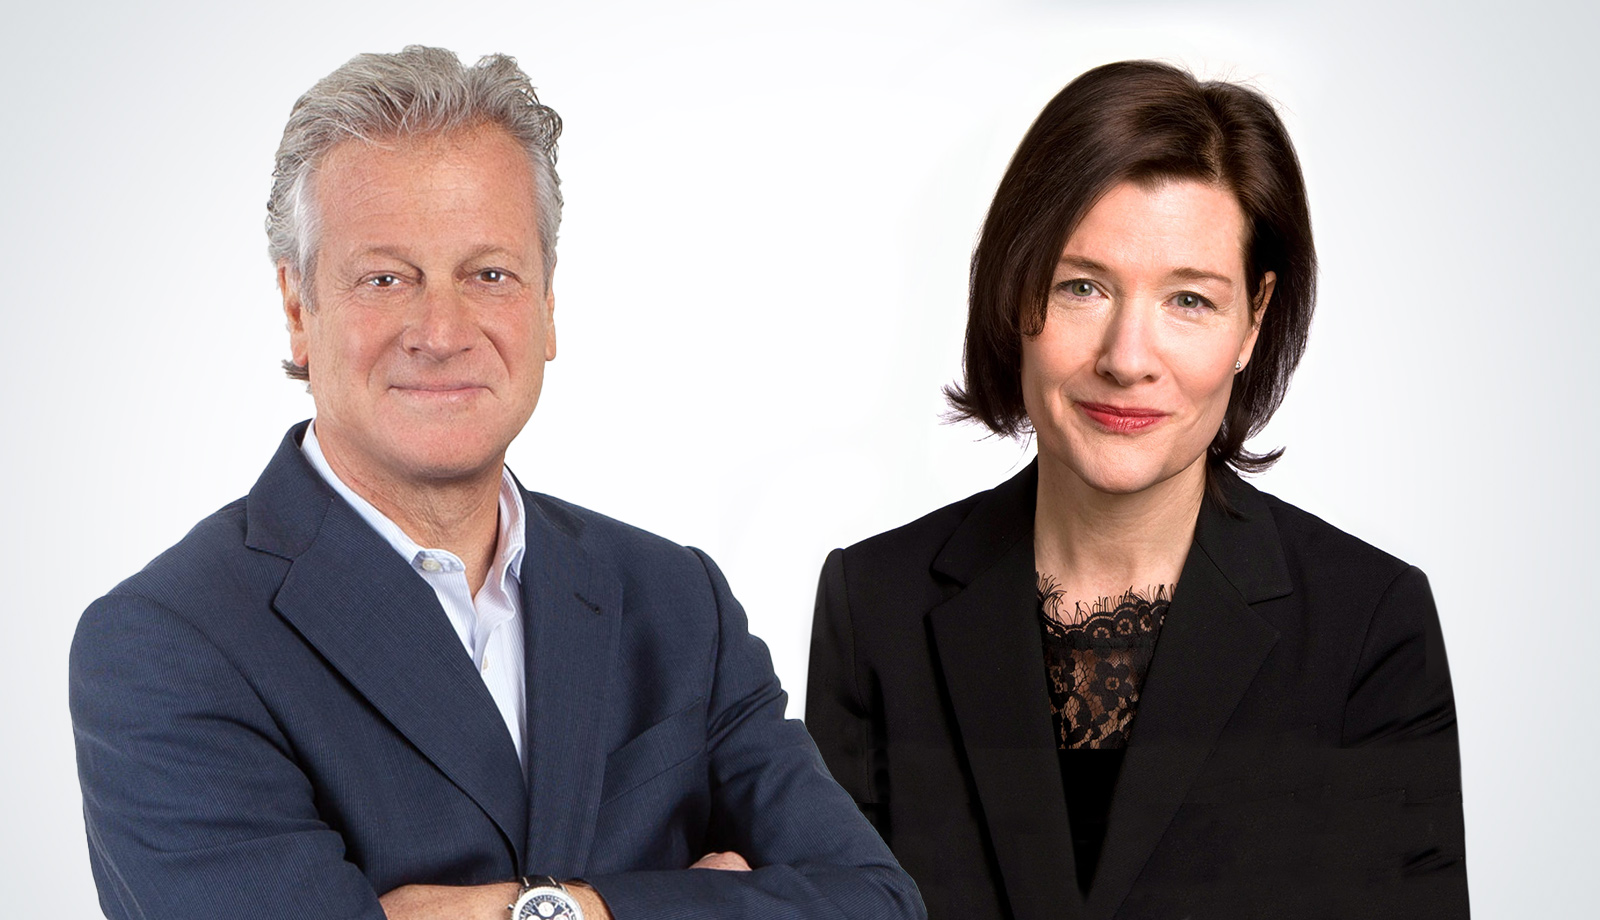 Interpublic Names Andy Polansky Chairman & CEO of Constituency Management Group; Gail Heimann Promoted to CEO, Weber Shandwick